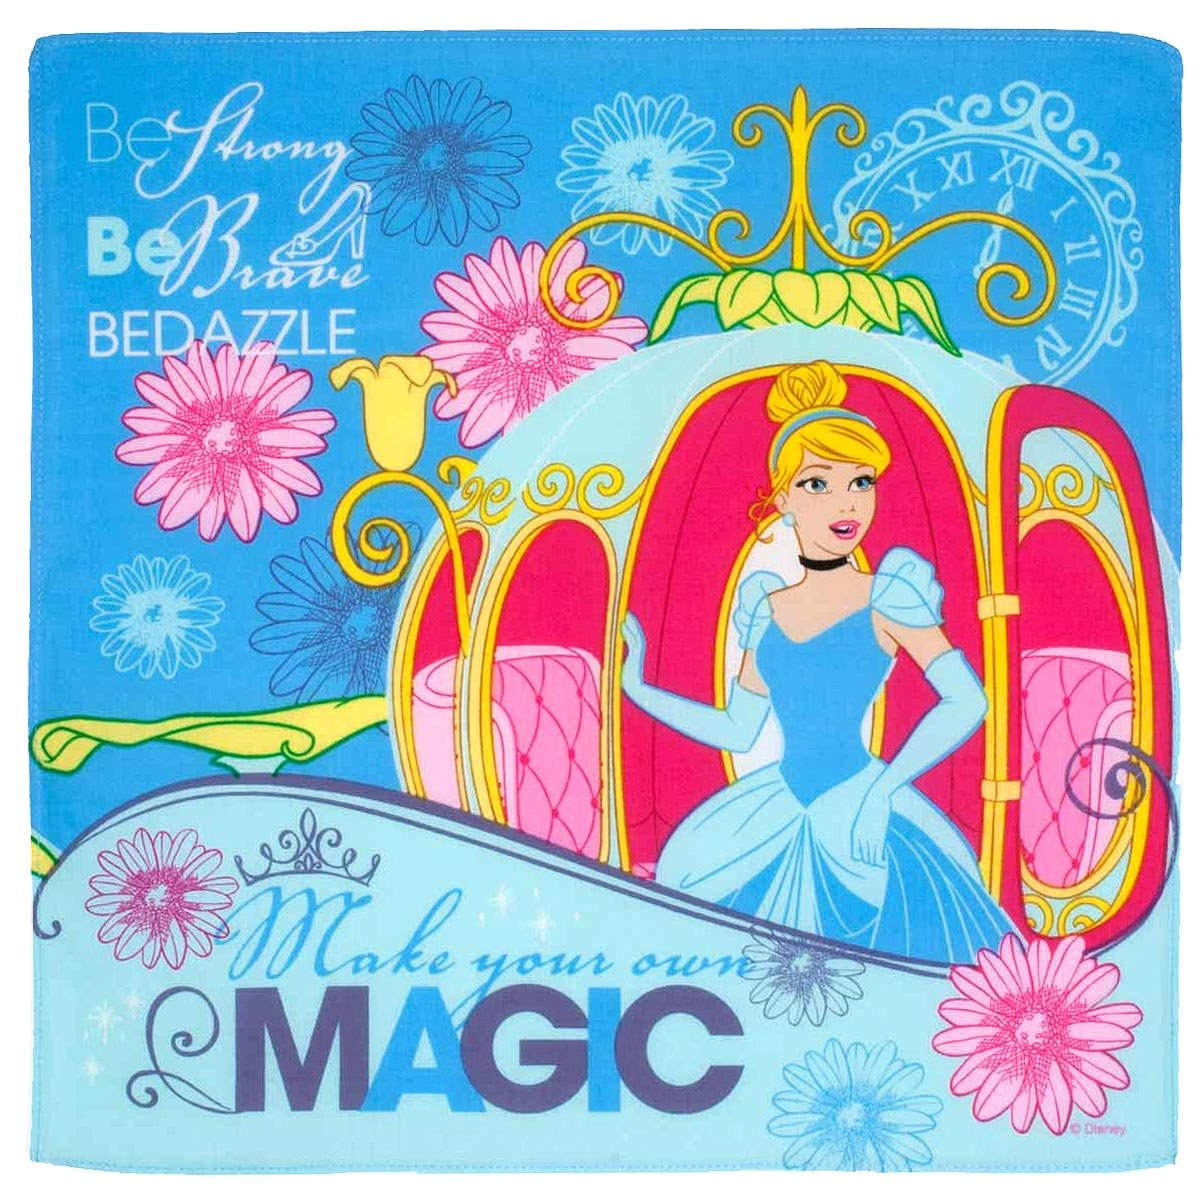 """Princesses"" children's handkerchiefs - 14"" square - 3 units in a bag. Merrysquare"